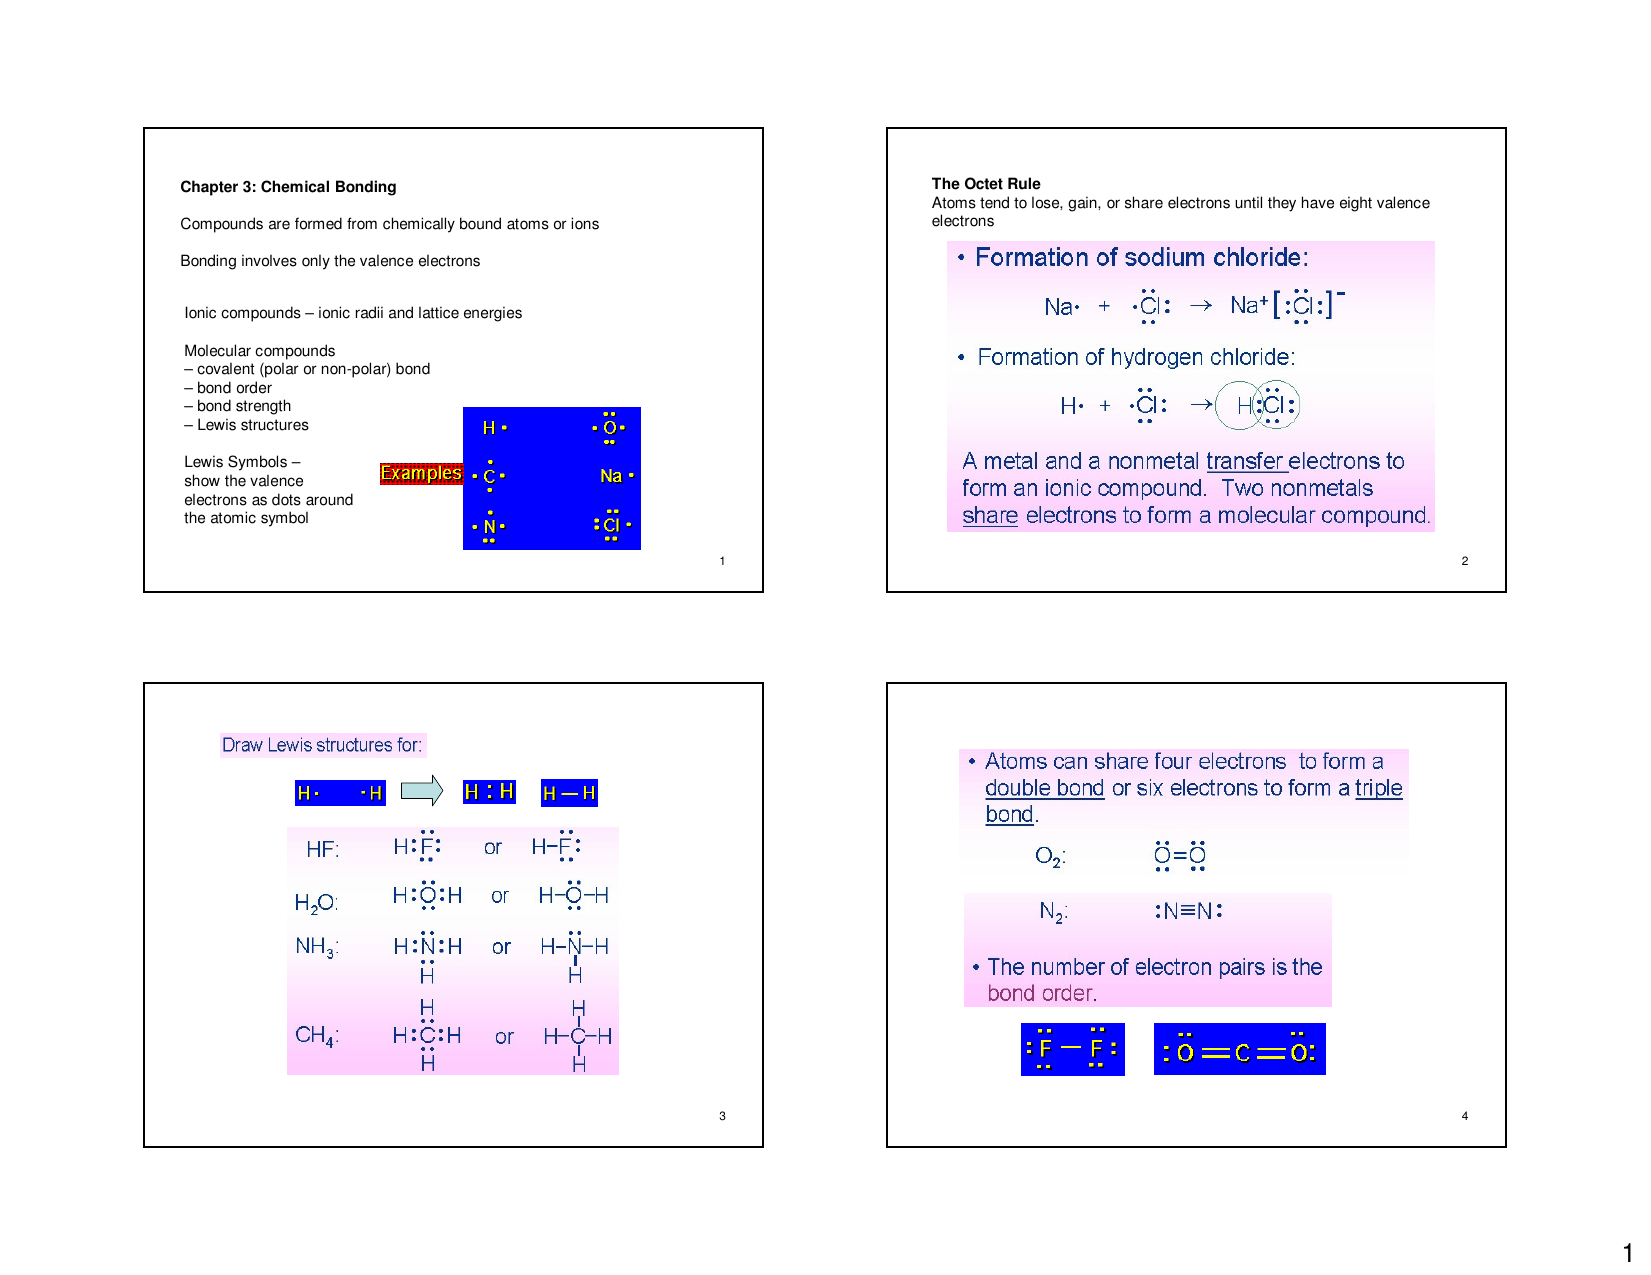 Chapter 3 Chemical Bonding Compounds Are Formed From